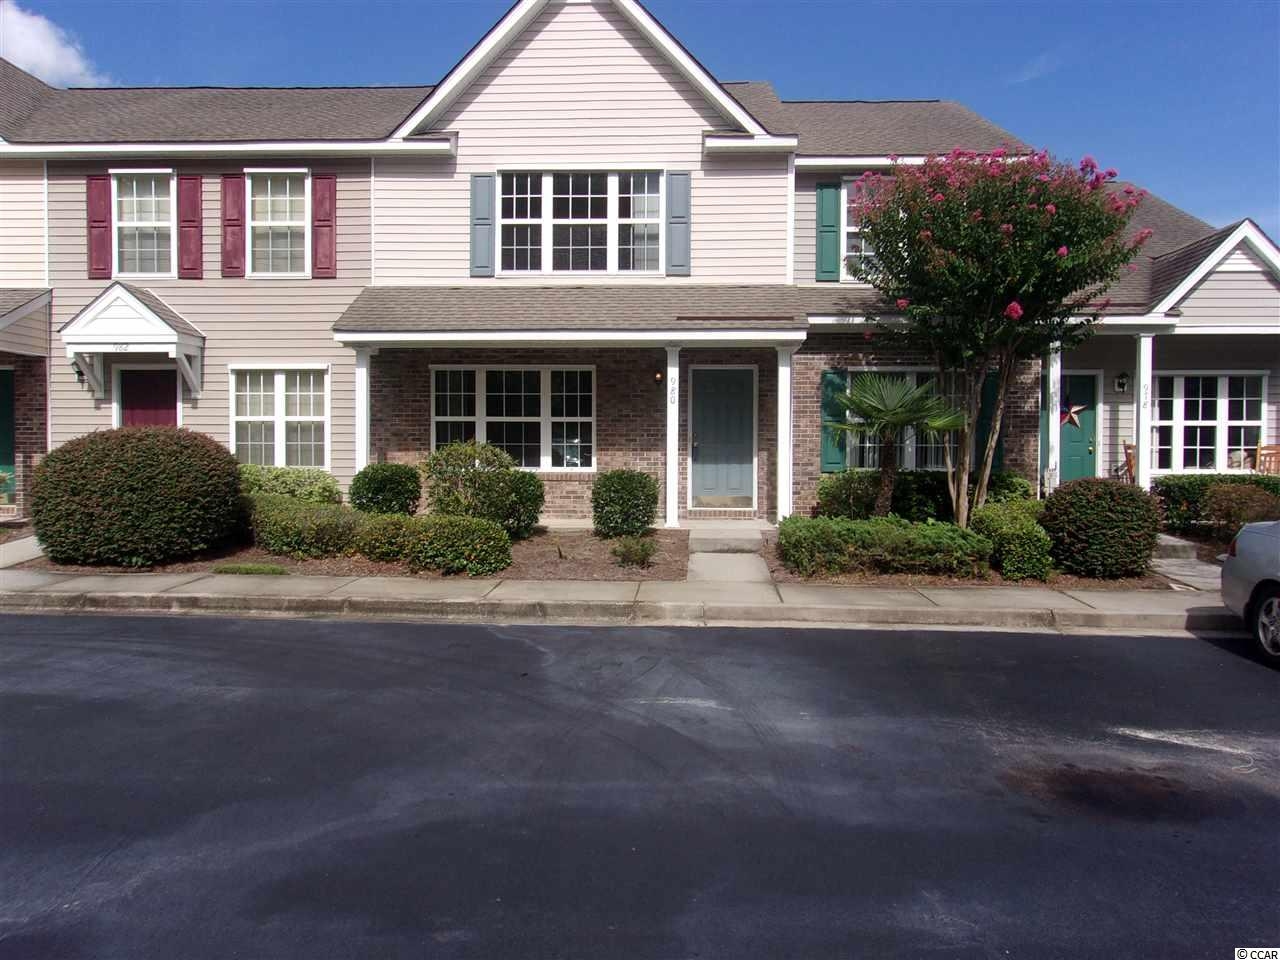 Townhouse MLS:1813123 PARKVIEW SUBDIVISION - 17TH AVE.  980 Pembrook Ct. Myrtle Beach SC